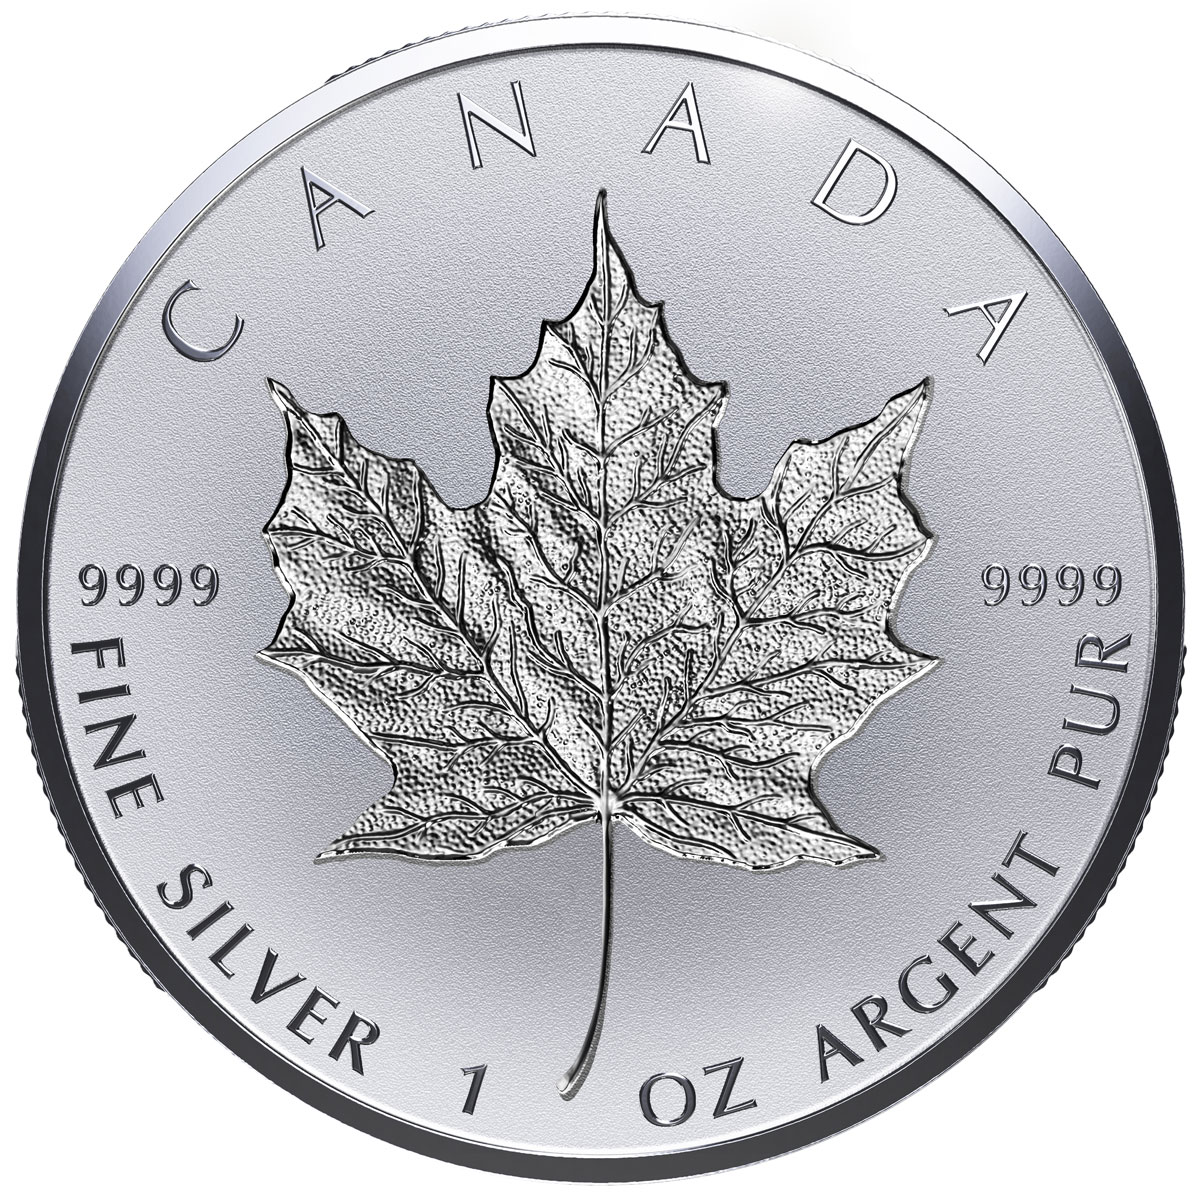 2018 Canada 1 oz Silver Maple Leaf - Incuse Reverse Proof $20 Coin GEM Proof OGP